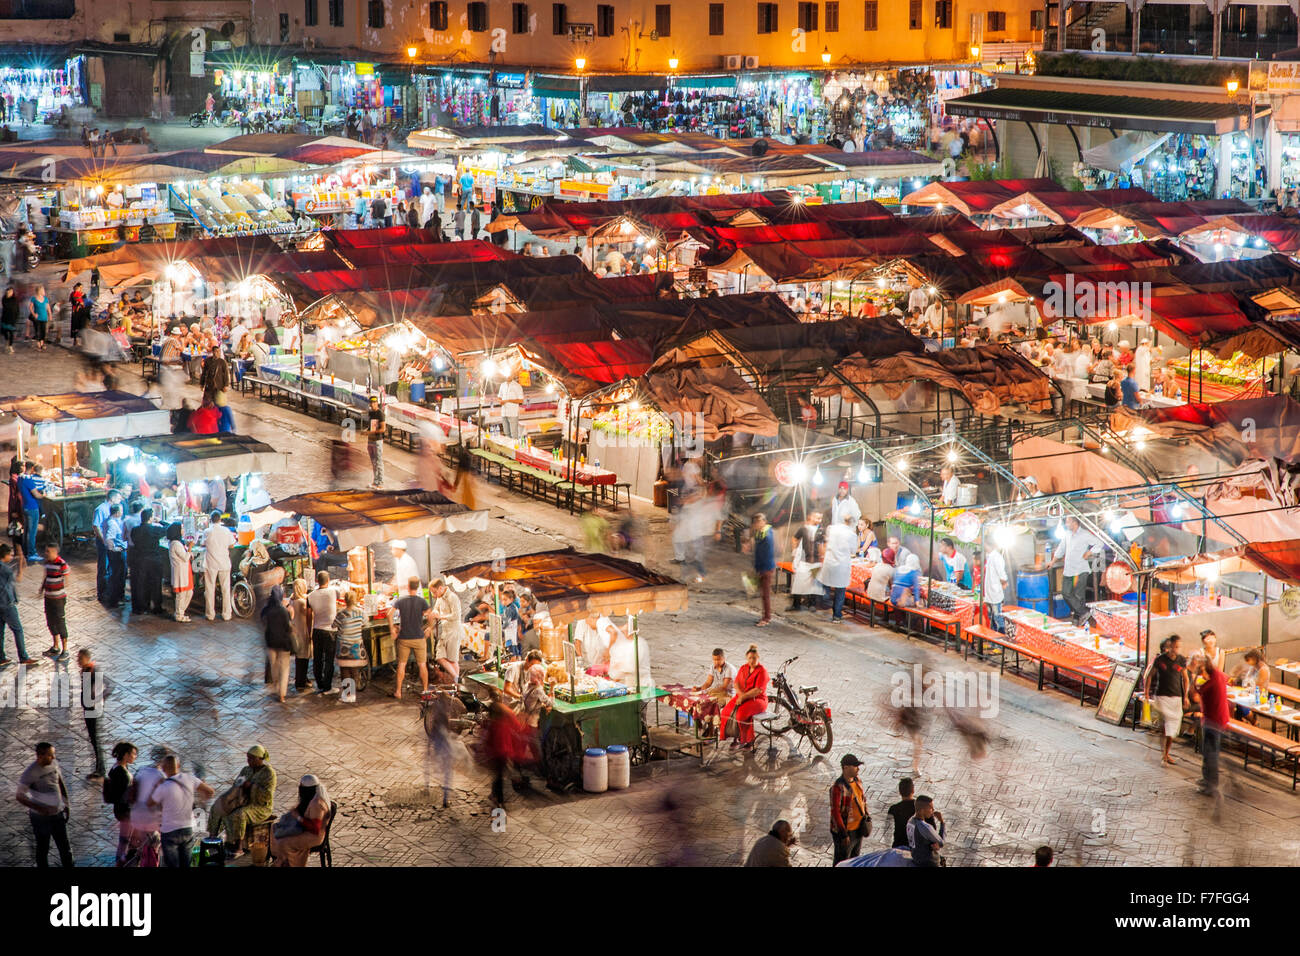 Dusk view of food stalls and crowds in Jemaa El Fna Square in Marrakech, Morocco. - Stock Image